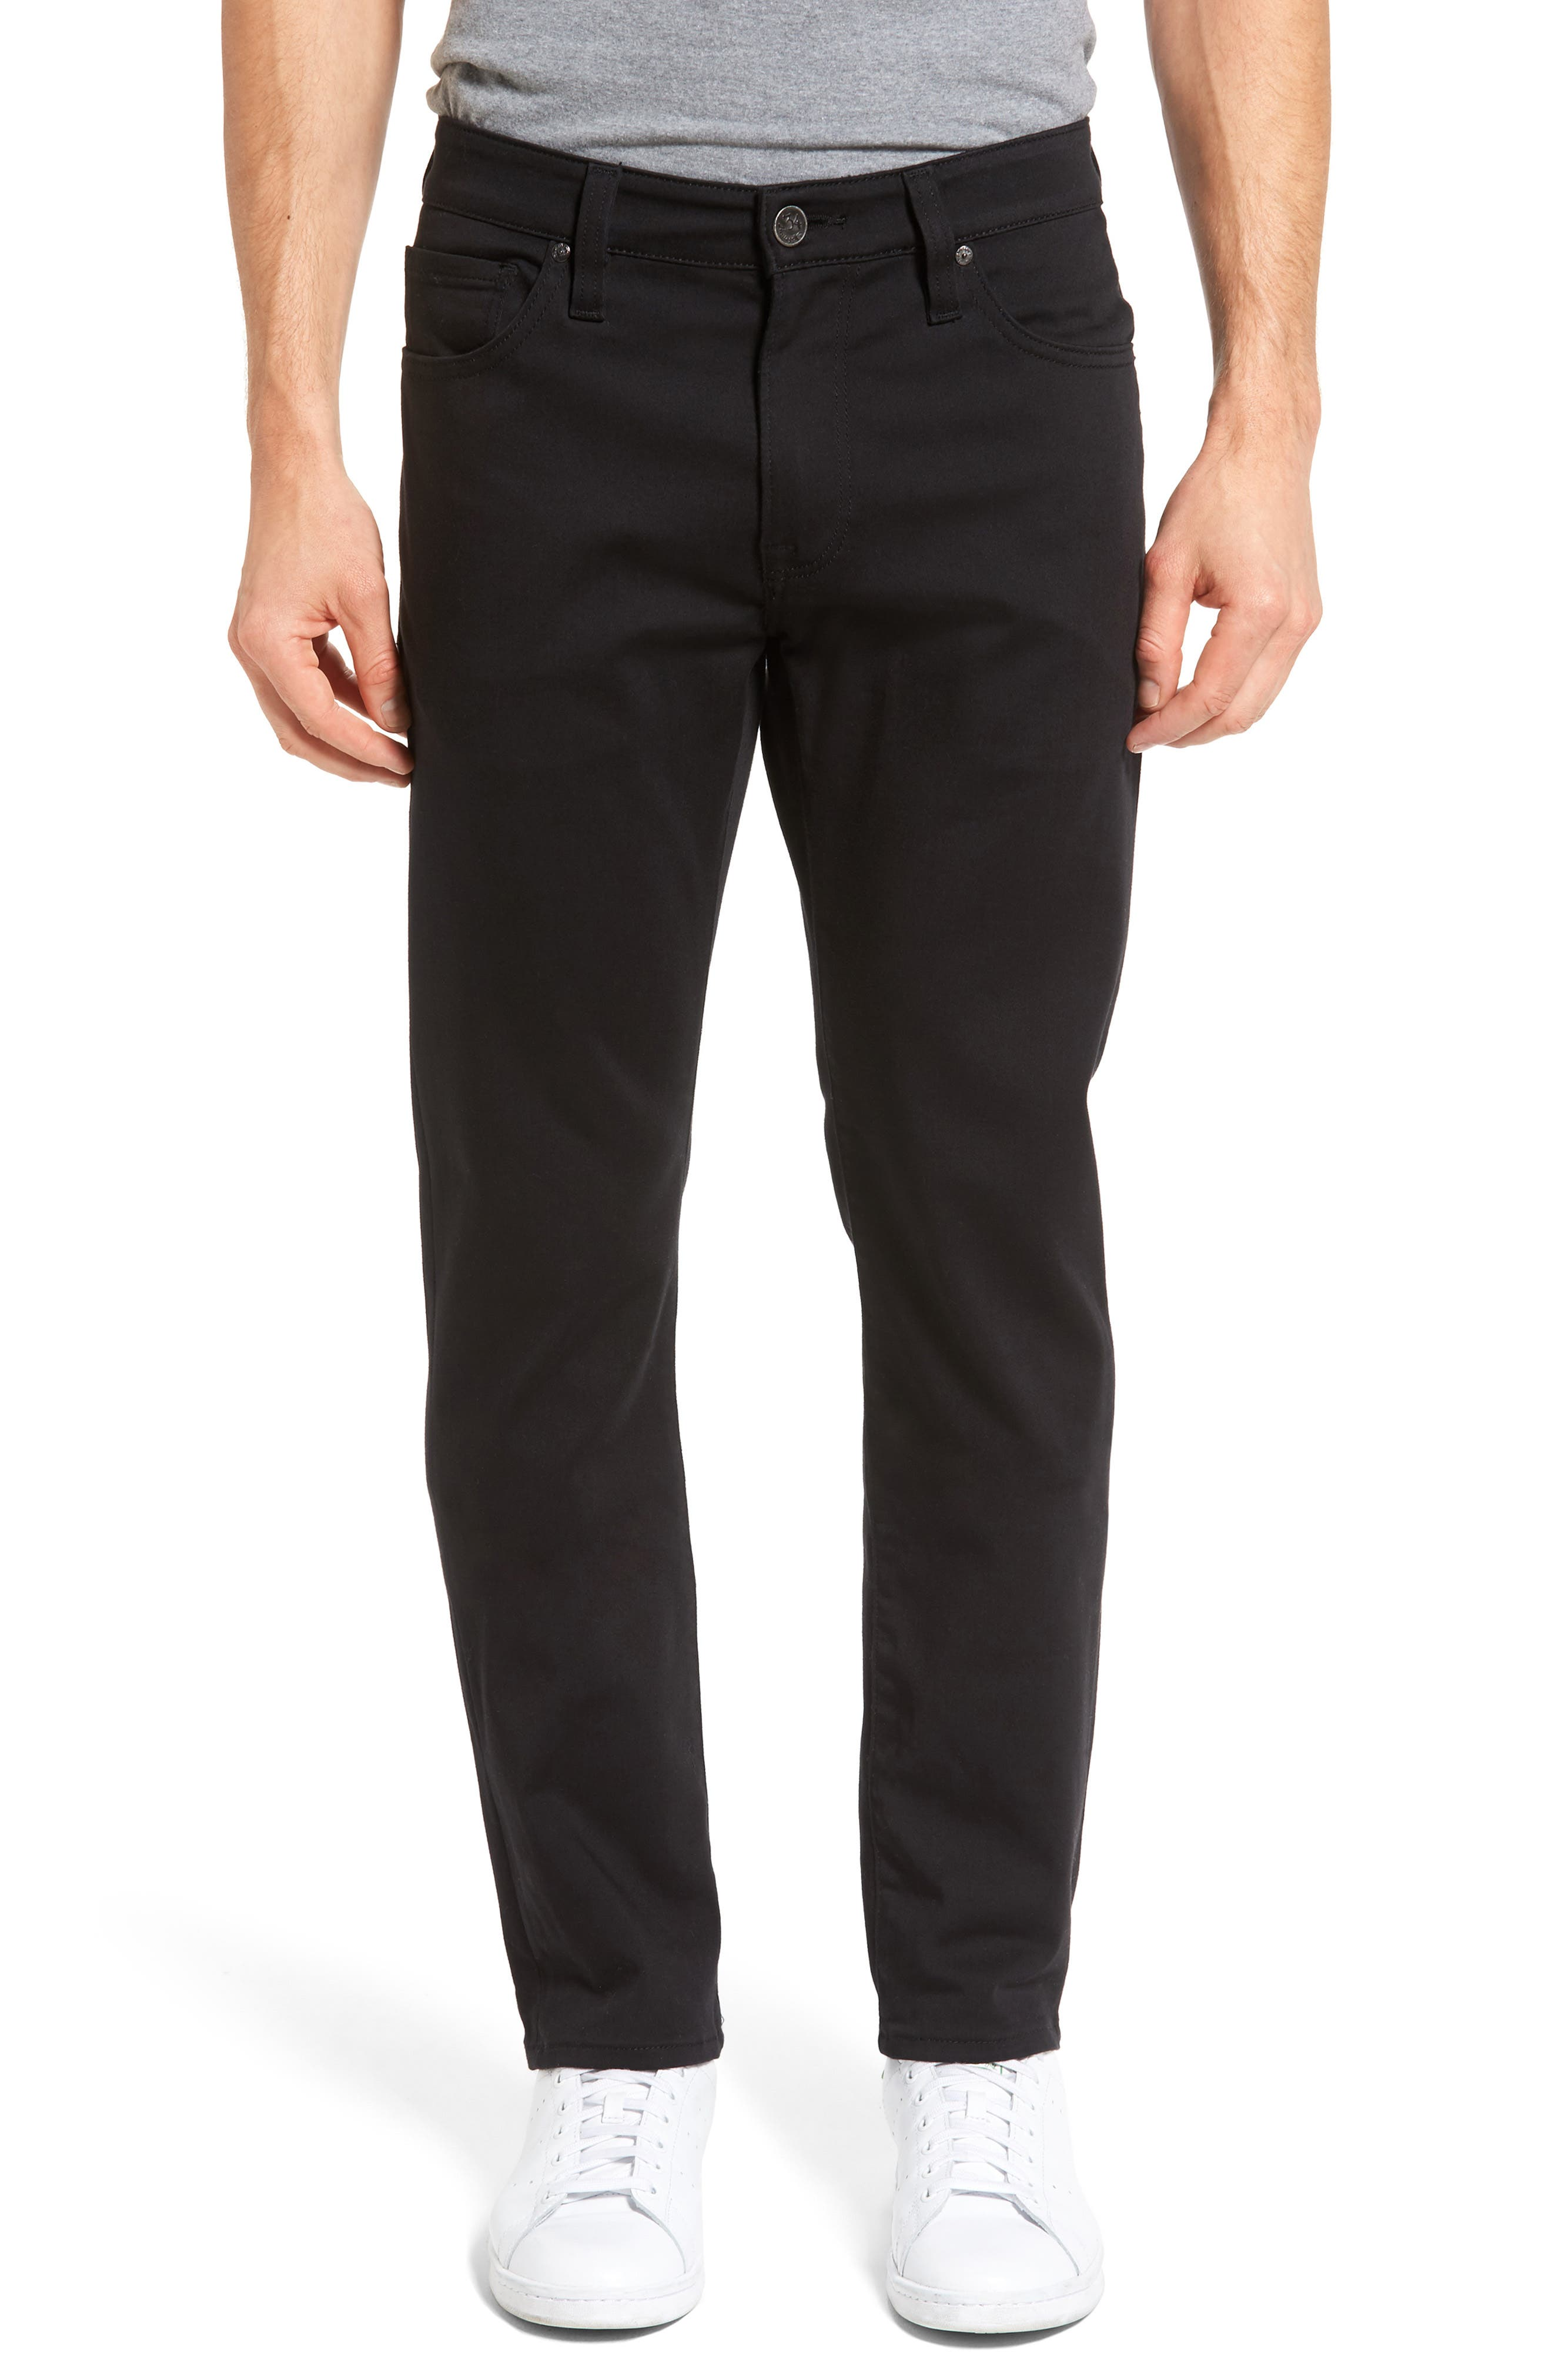 Courage Straight Leg Jeans,                         Main,                         color, Select Double Black